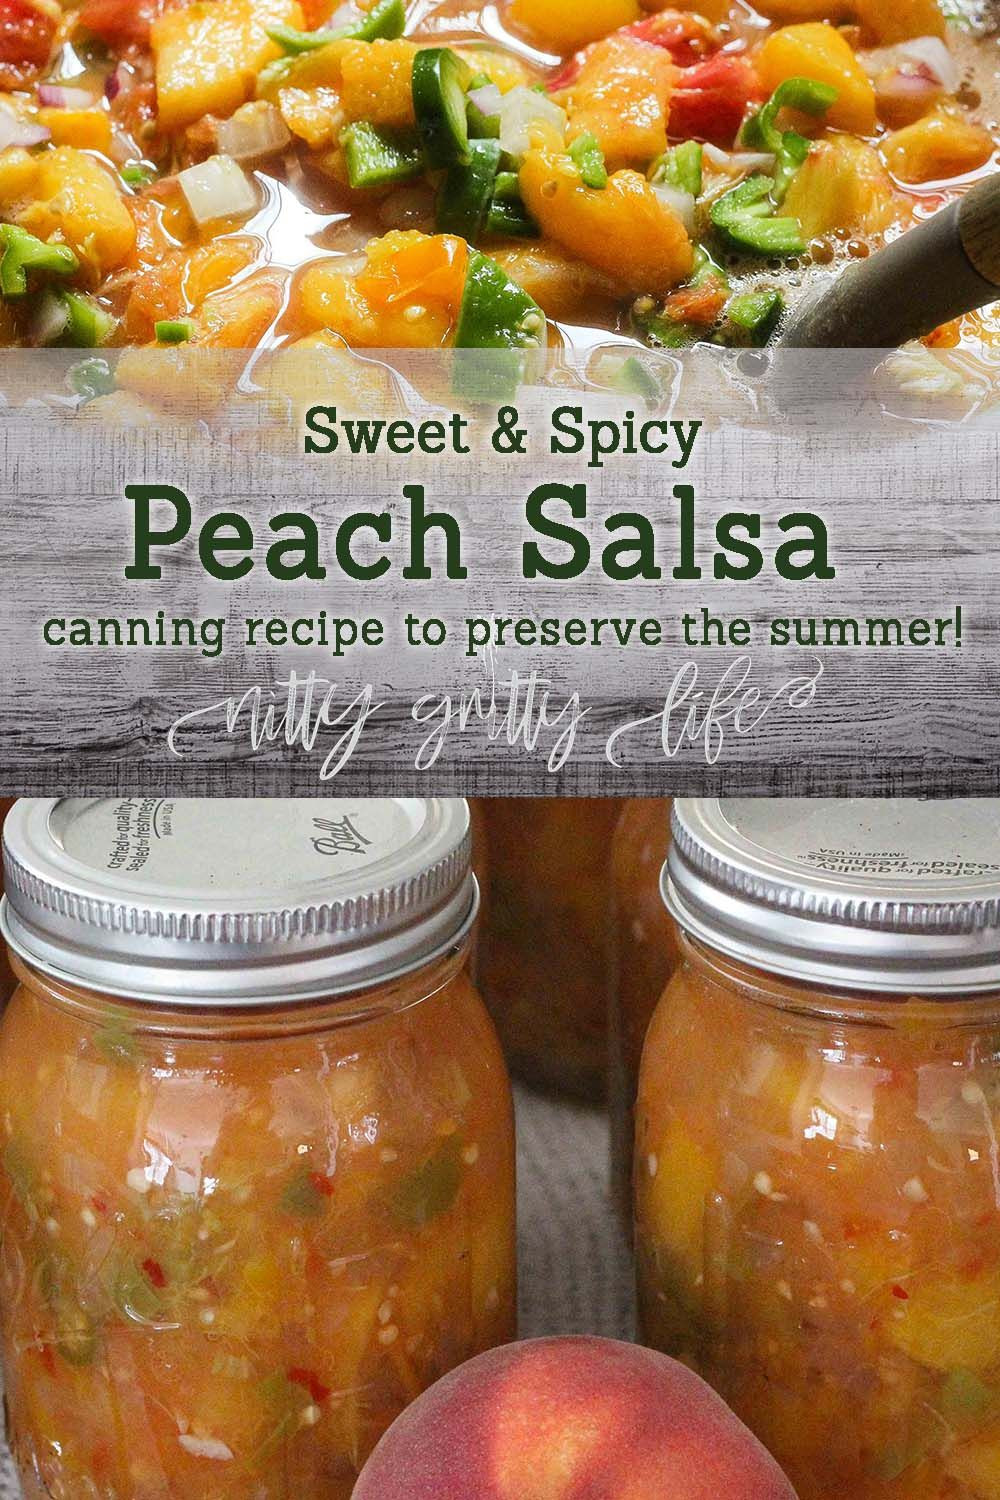 Sweet Salsa Recipe For Canning  Sweet & Spicy Peach Salsa Canning Recipe